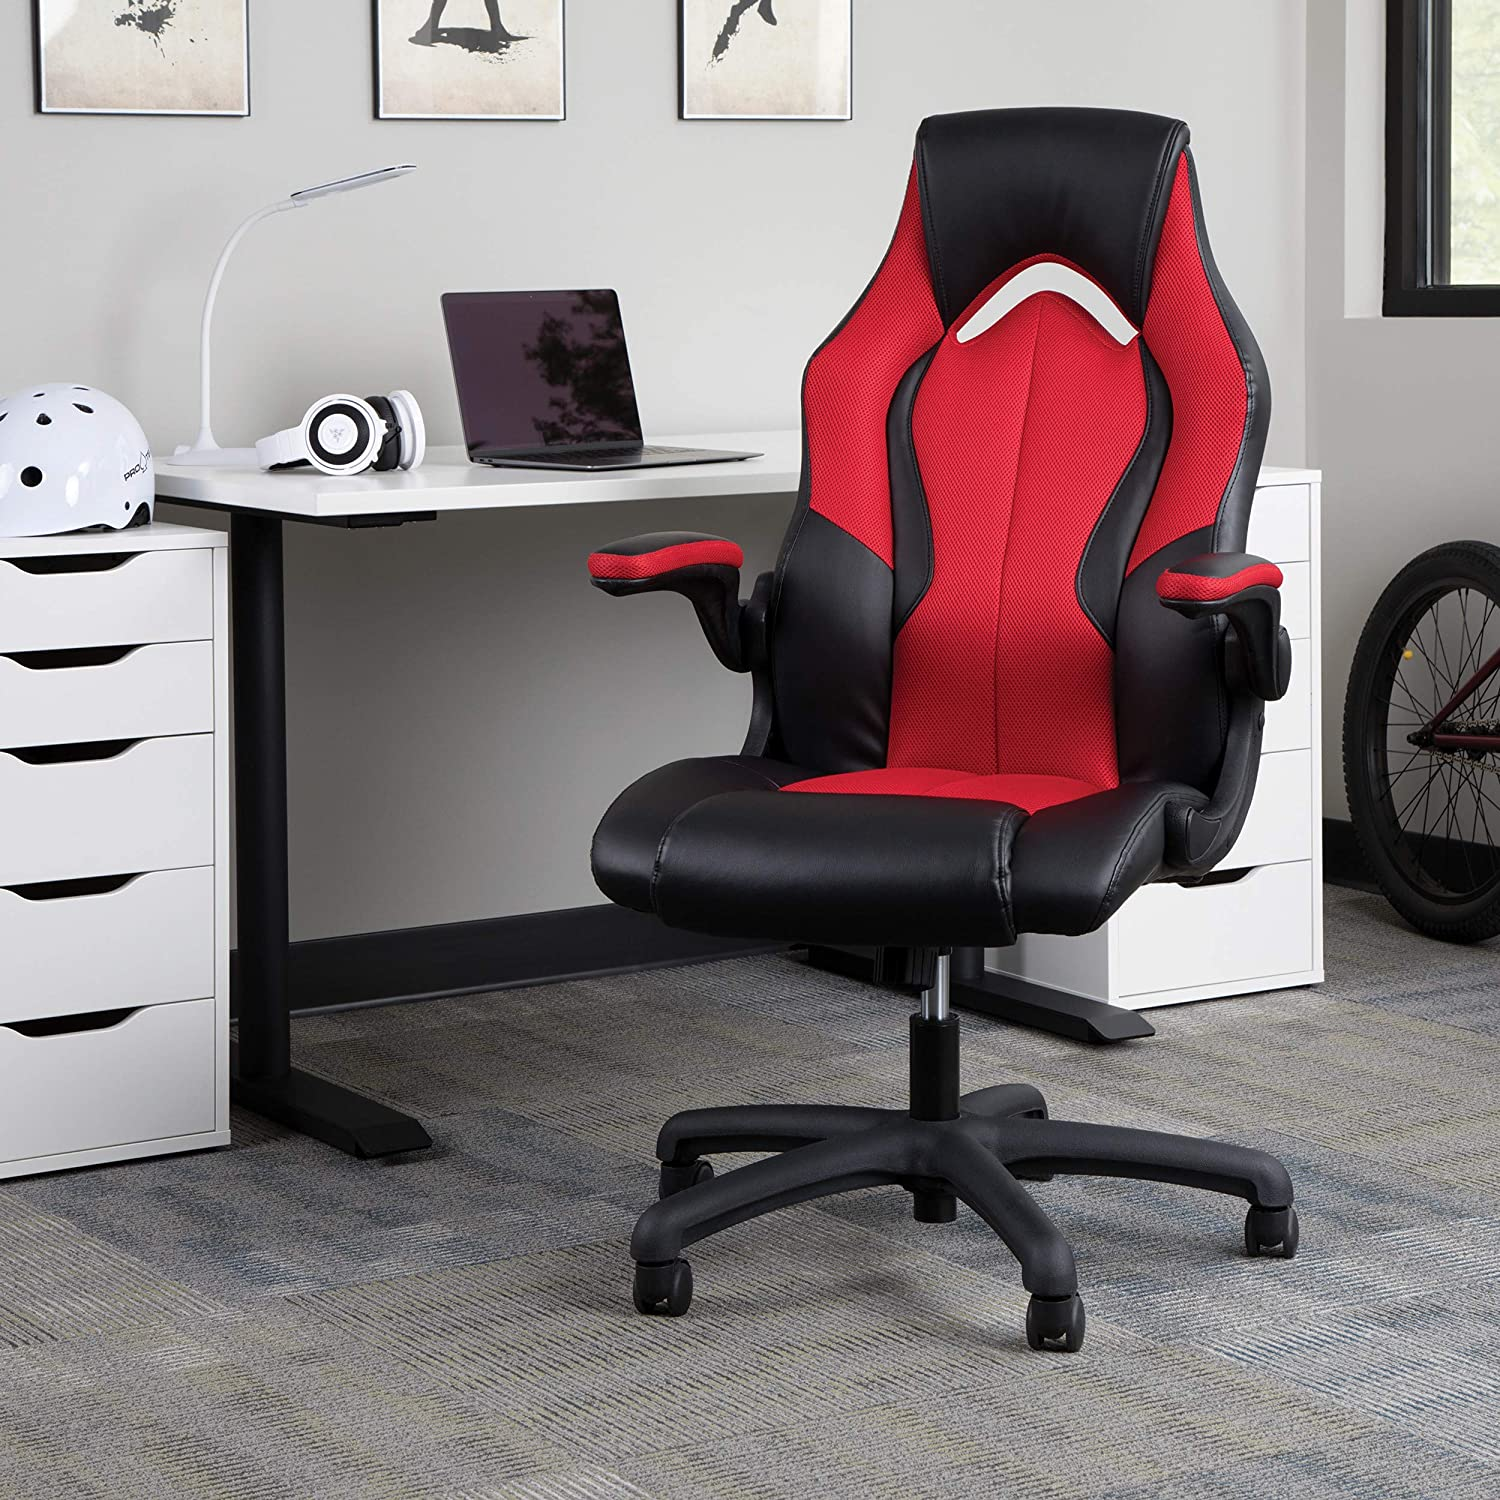 OFM Essentials Gaming Chair 2021, Best High Back Computer Chair in US 2021